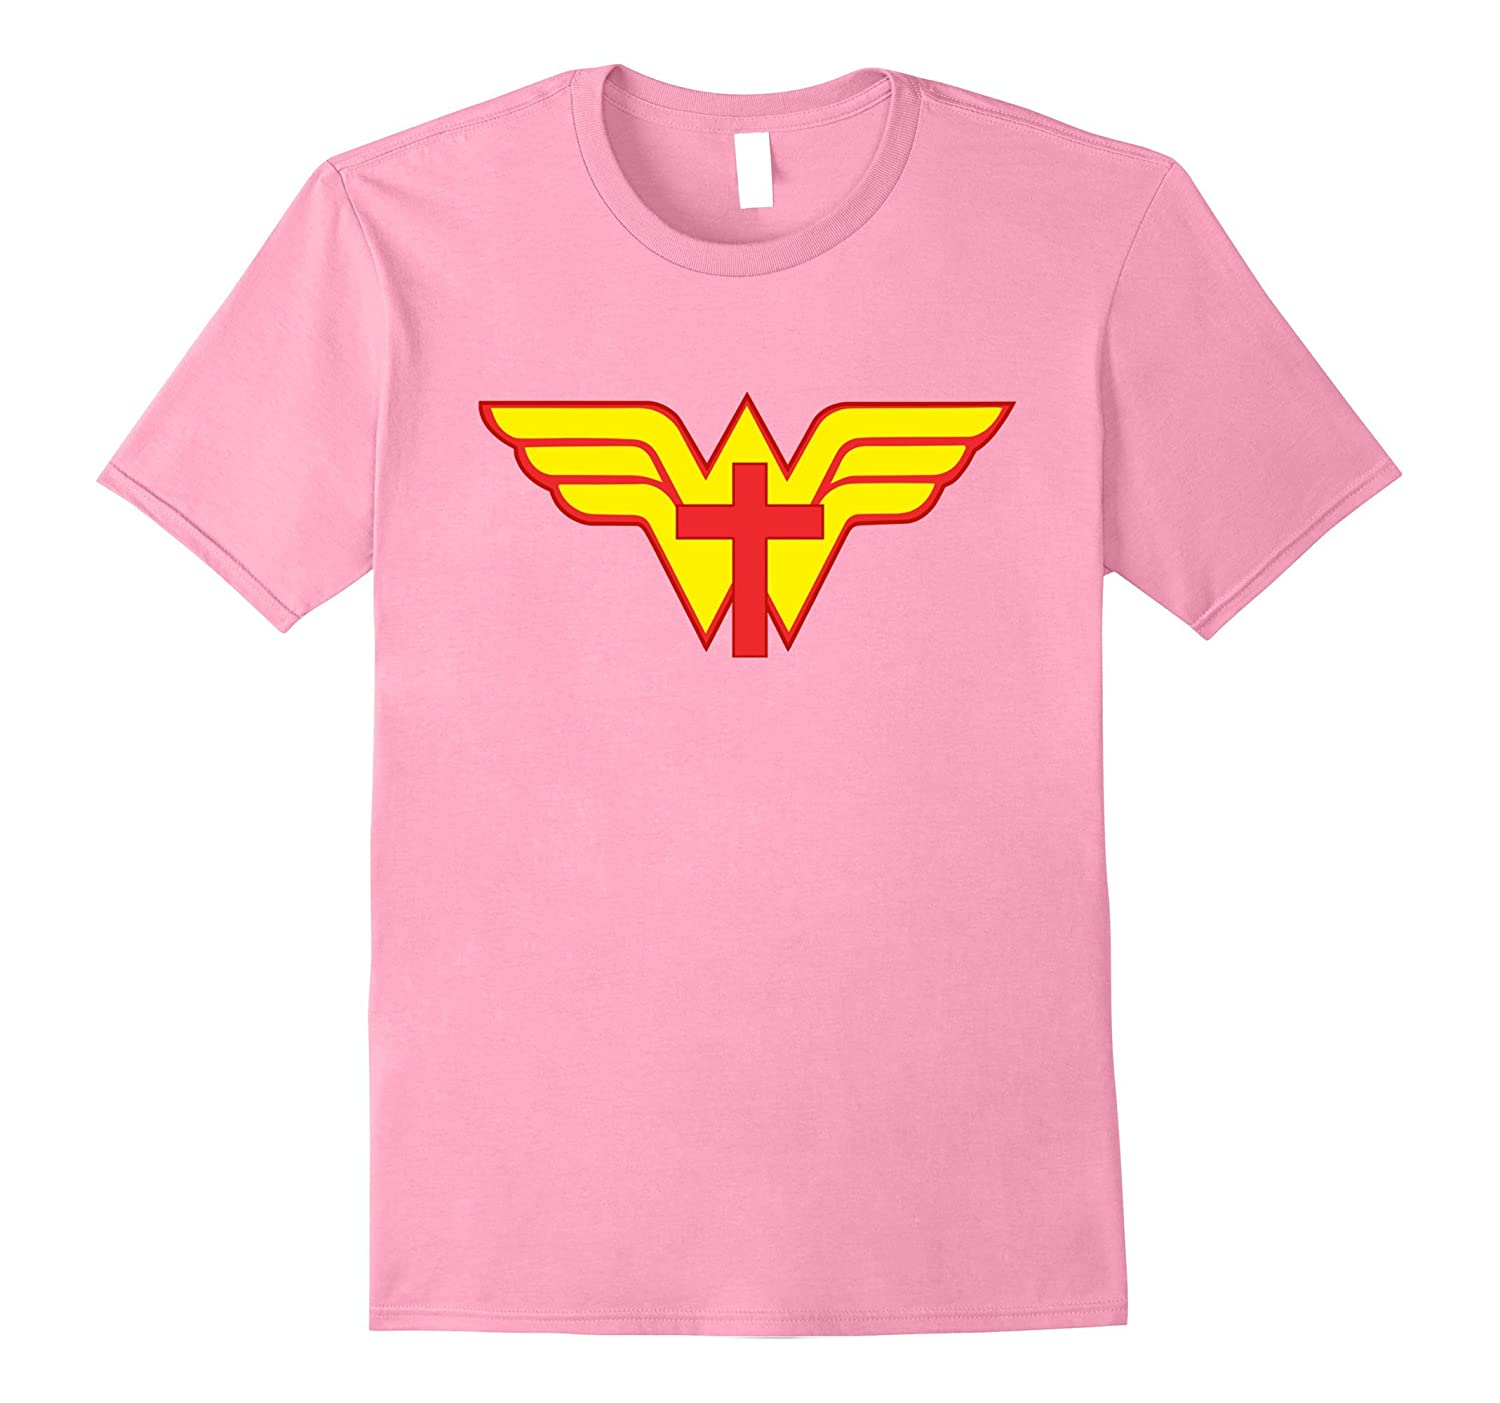 JESUS IS MY SUPERHERO T-shirt for Women